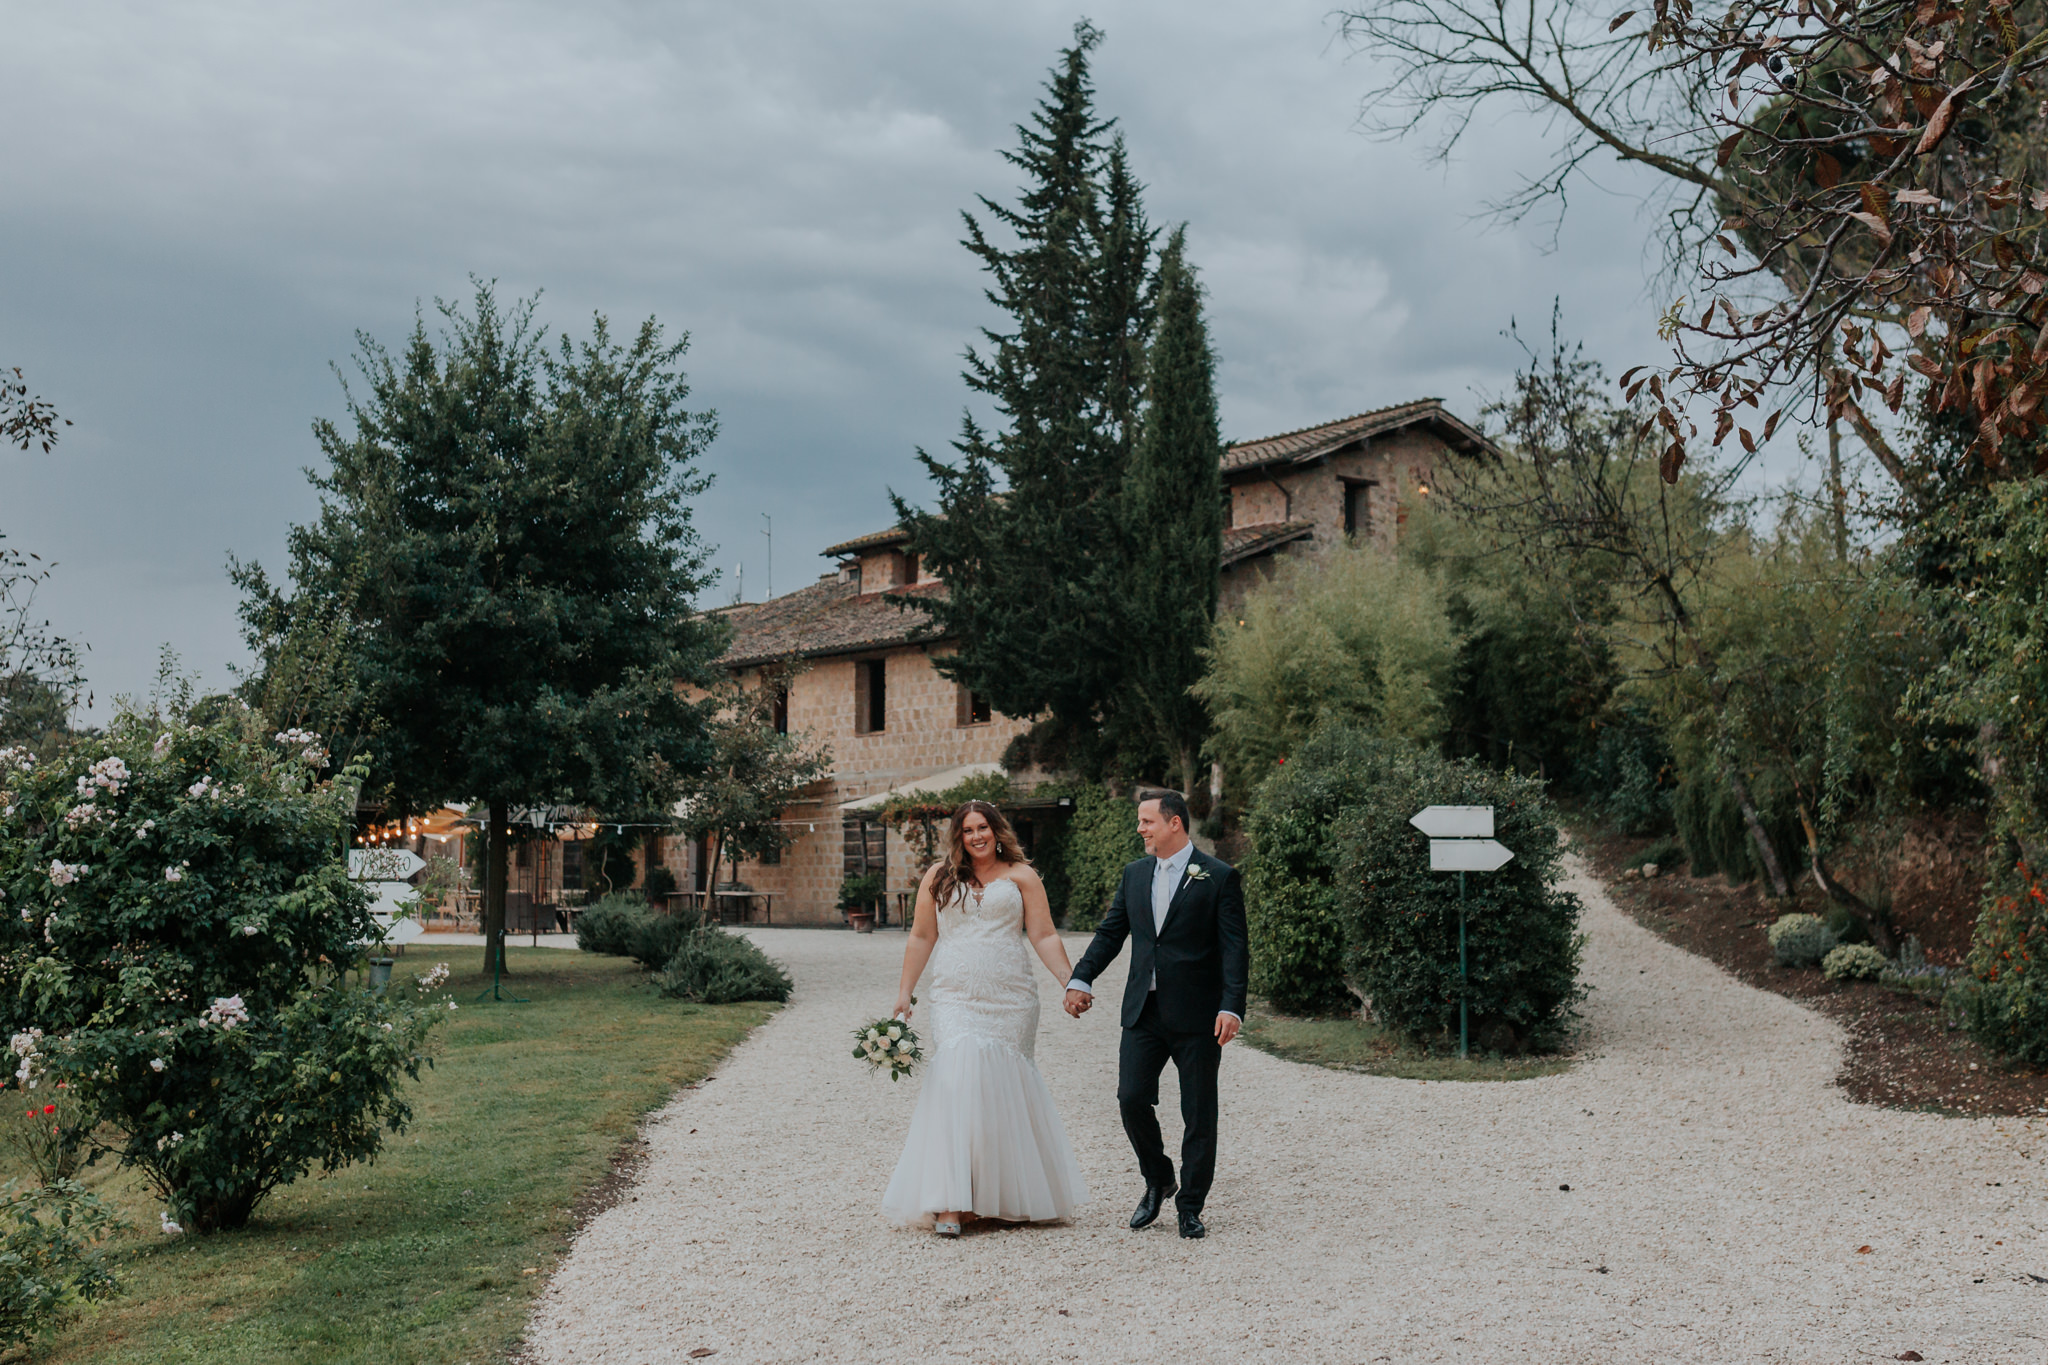 Elkie&Doug_Wedding_Italy_KristieCarrickPhotography_LOW-586.jpg